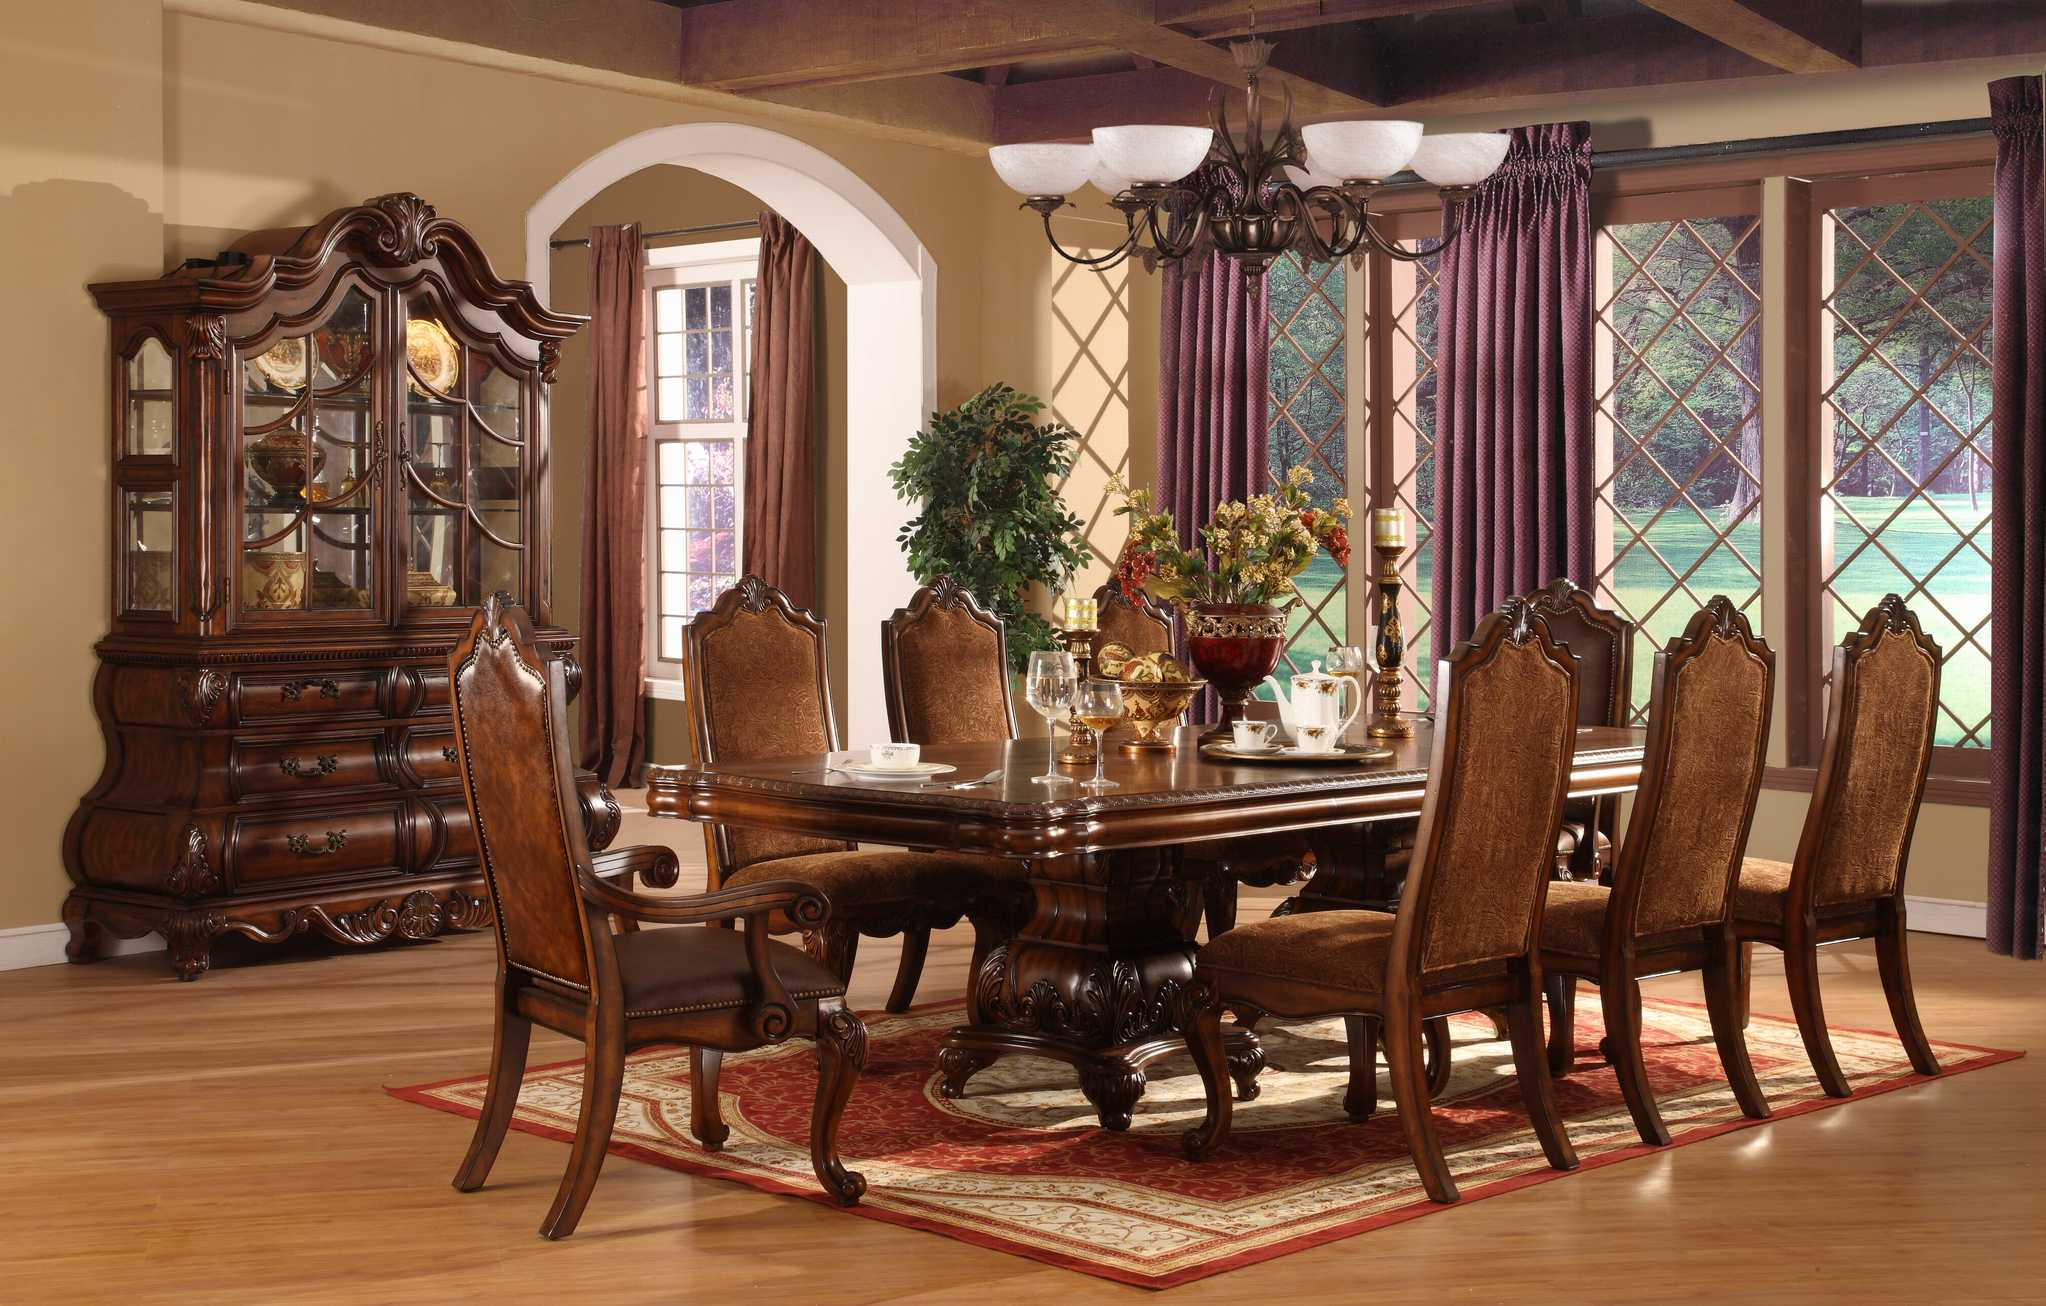 Perfect formal dining room sets for 8 homesfeed for Dining room furniture images